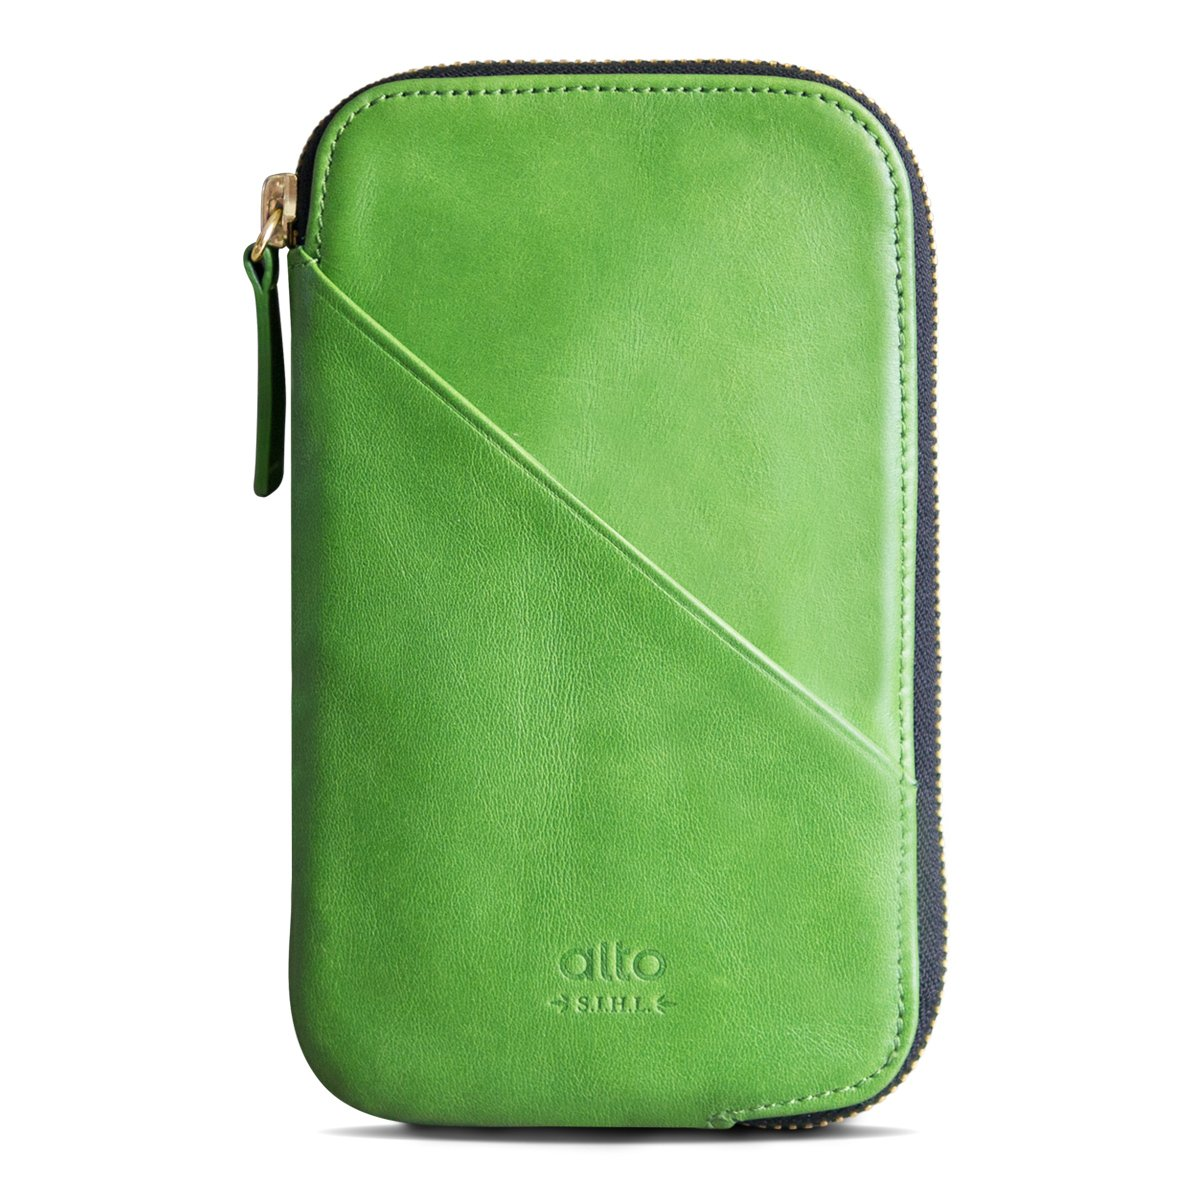 alto Handmade Premium Italian Leather for Apple iPhone 7 / iPhone 7 Plus / iPhone 8 / iPhone 8 Plus / iPhone X Travel Phone Wallet (Lime) by Alto